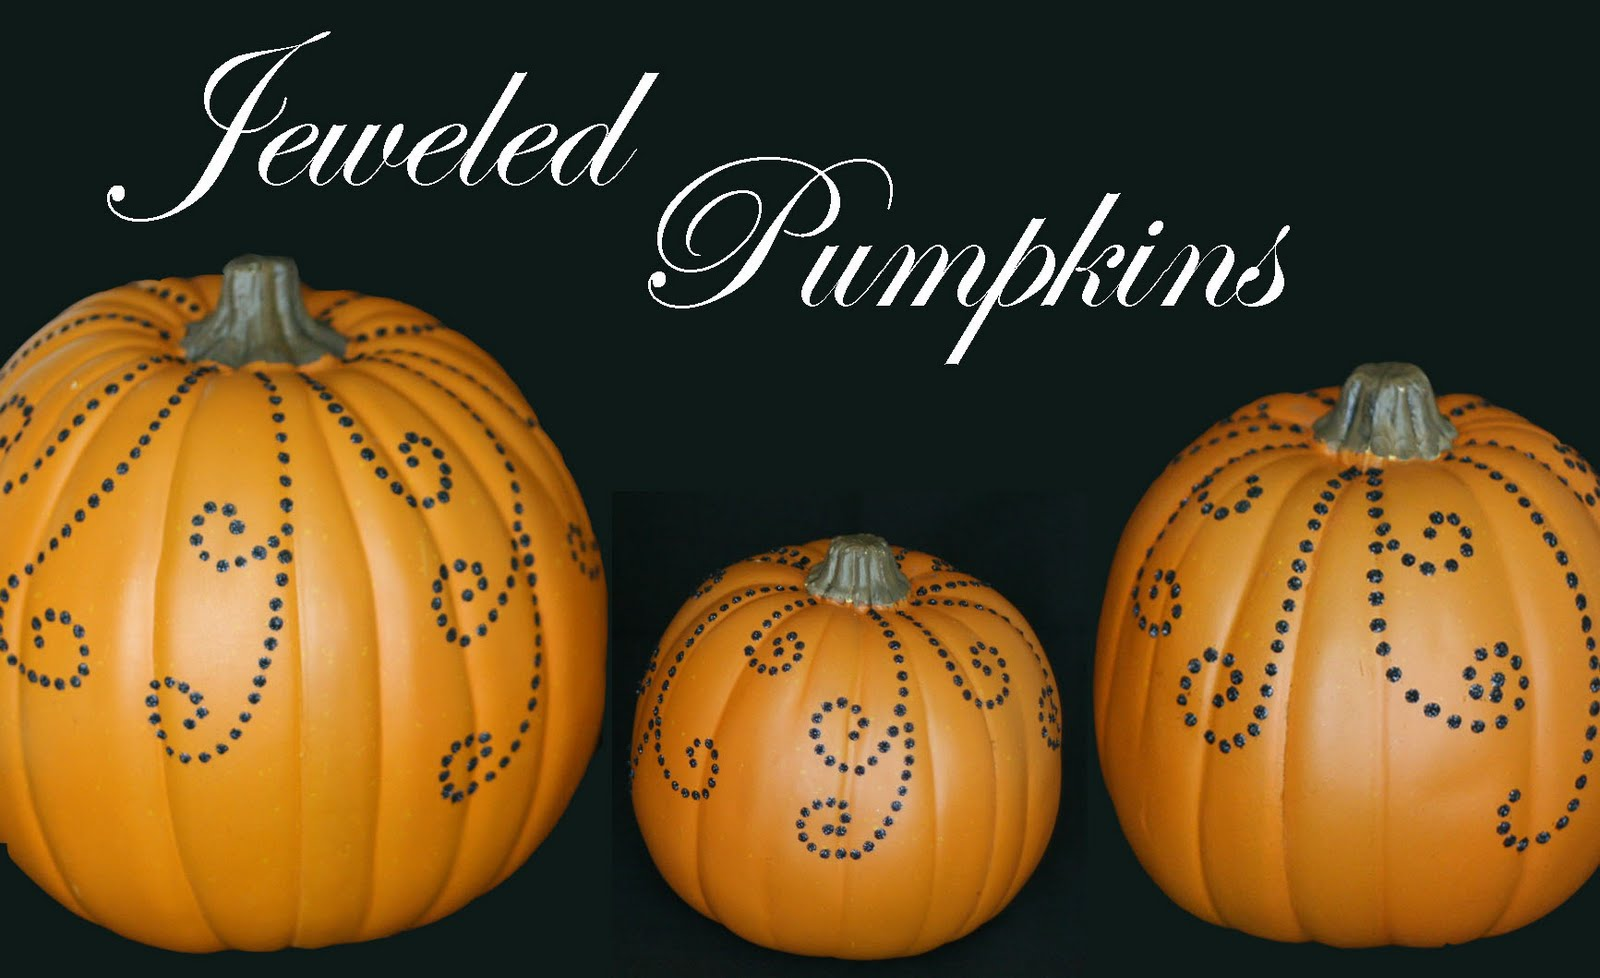 Pretty Jeweled Pumpkins D.I.Y. Craft & Pretty Jeweled Pumpkins D.I.Y. Craft u2013 Glorious Treats